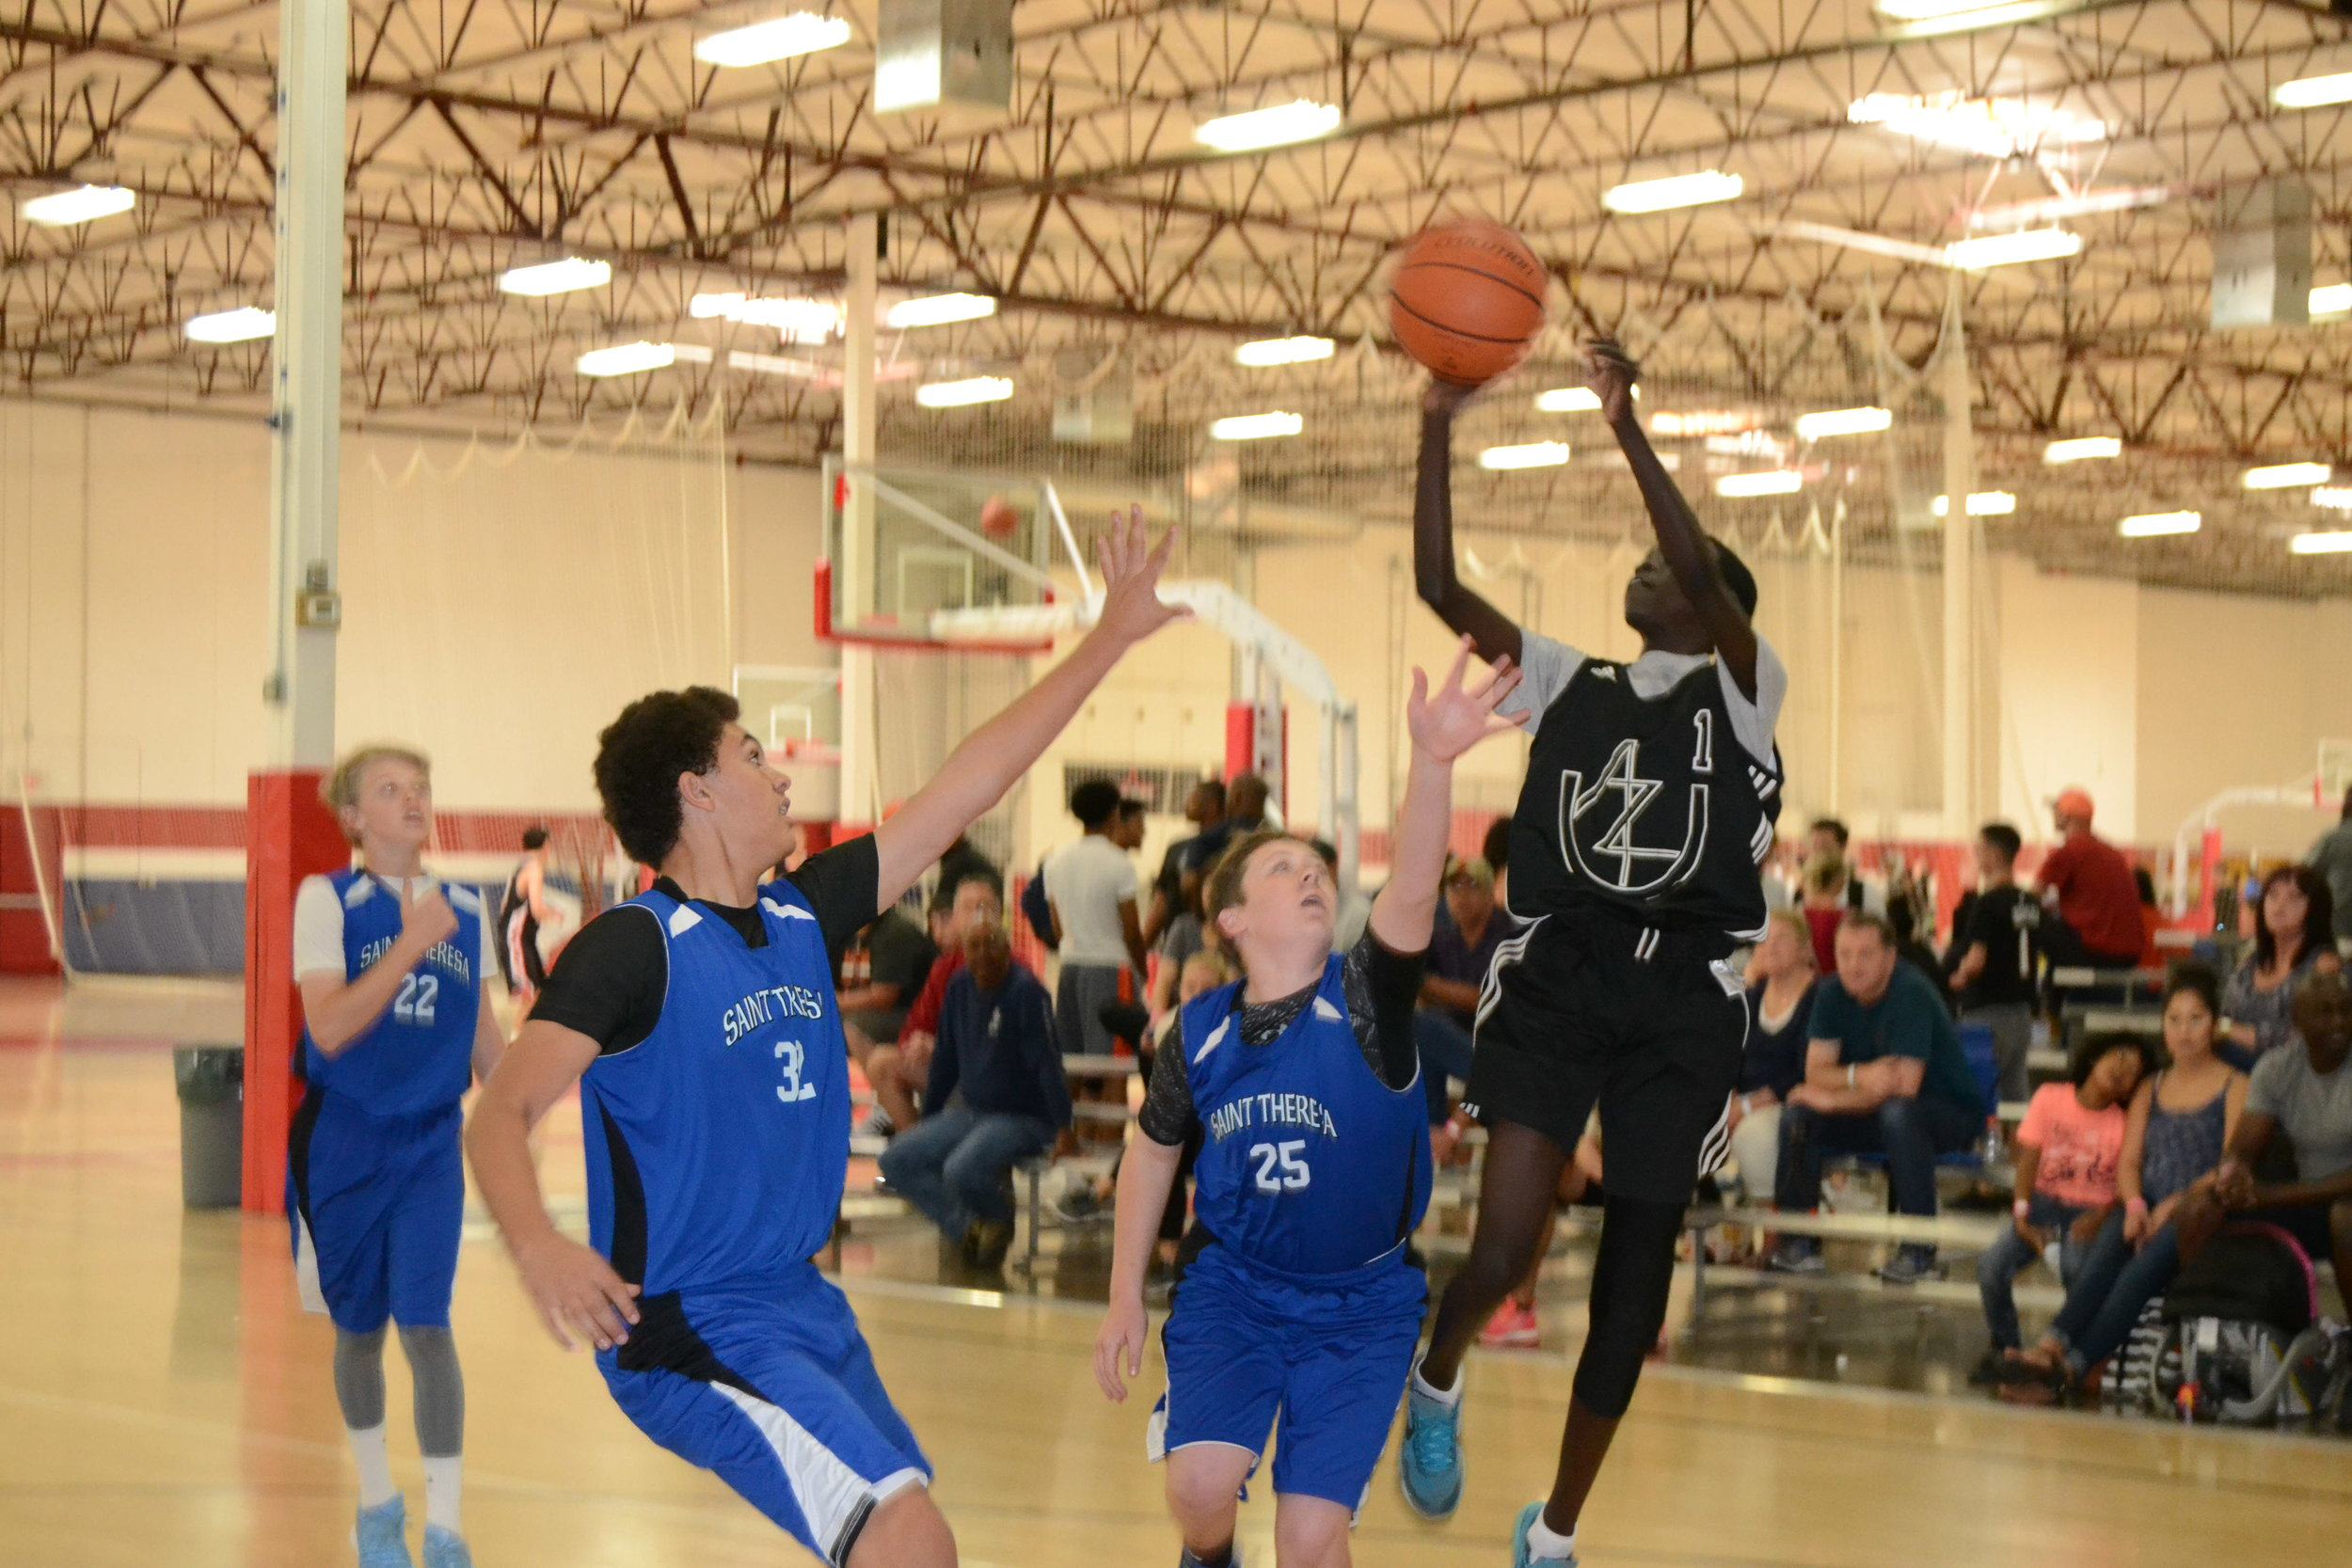 Ringo Aguek (13u) showcases his mid-range jumper at the Inspire courts. (9/16/2017)